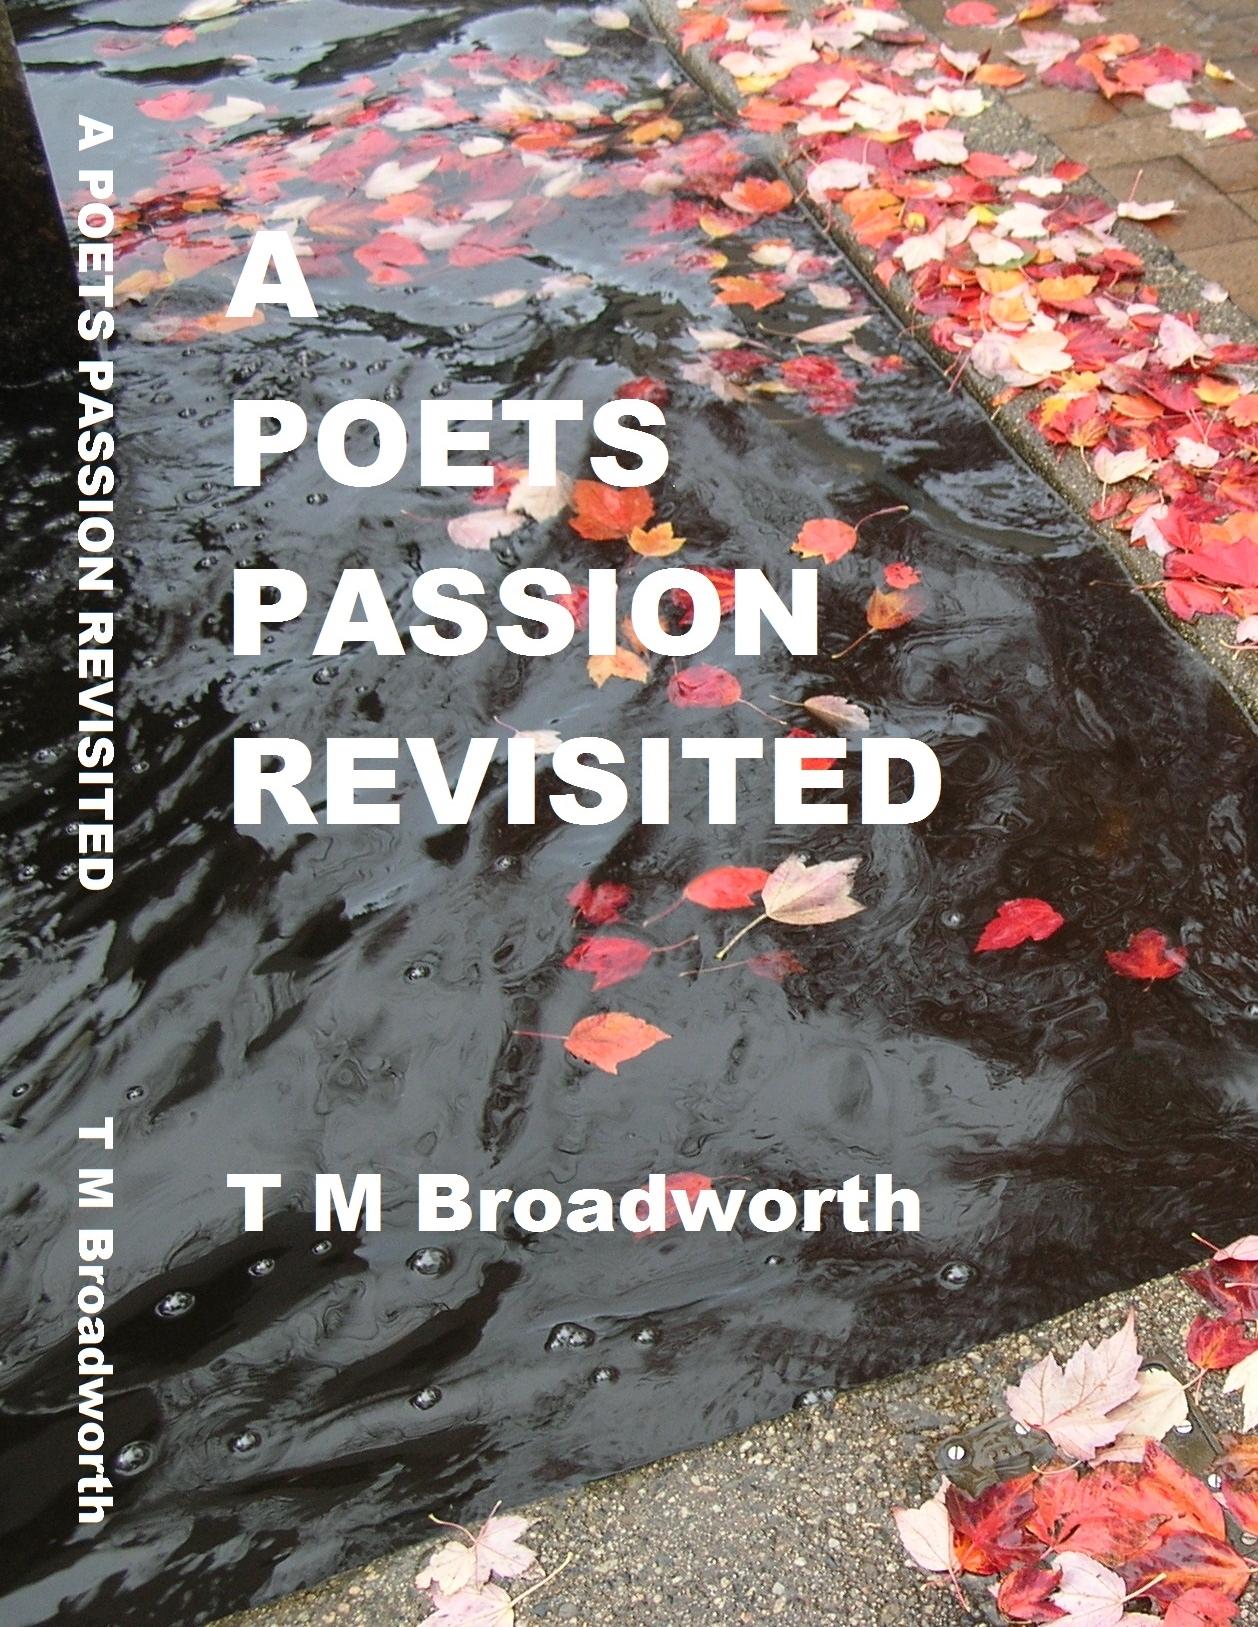 A Poets Passion Revisited by T M Broadworth